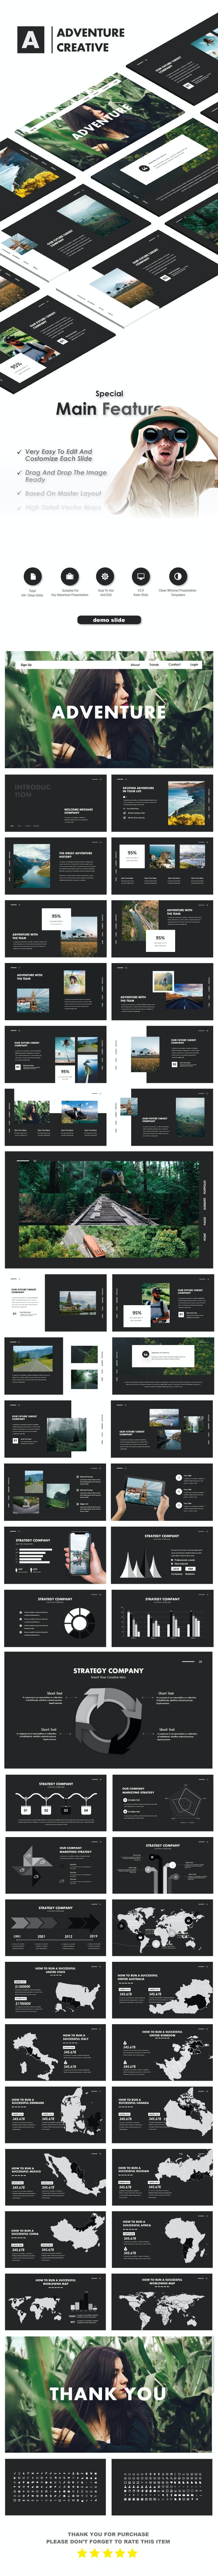 Adventure Creative PowerPoint Template - Creative PowerPoint Templates